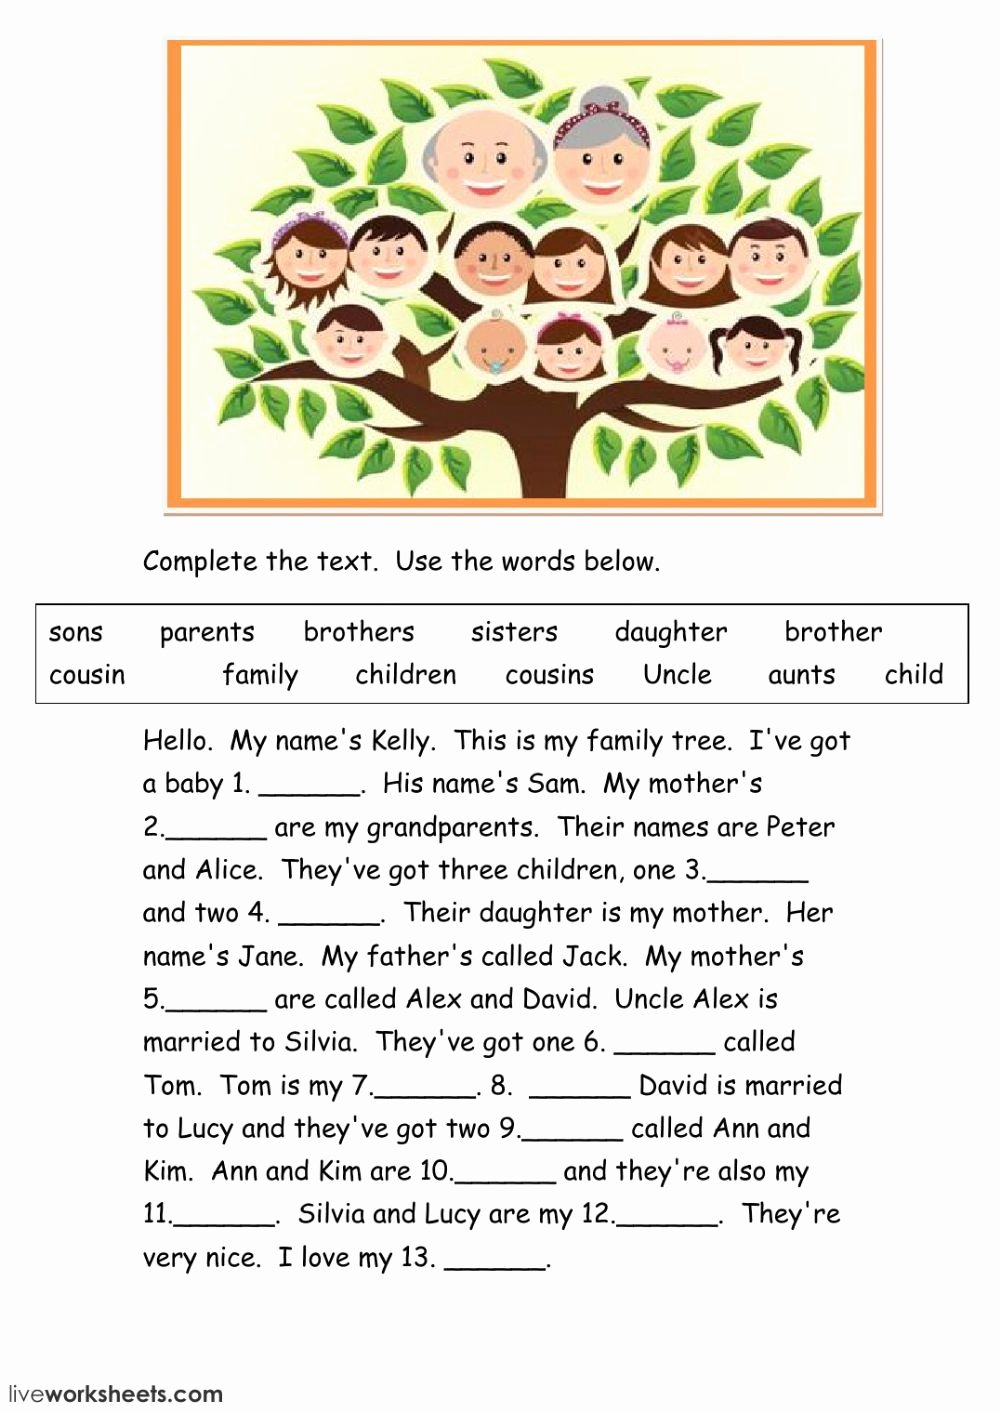 Family Tree Worksheet Pdf Beautiful the Family Online Exercise You Can Do the Exercises Online or the Worksheet as Pdf